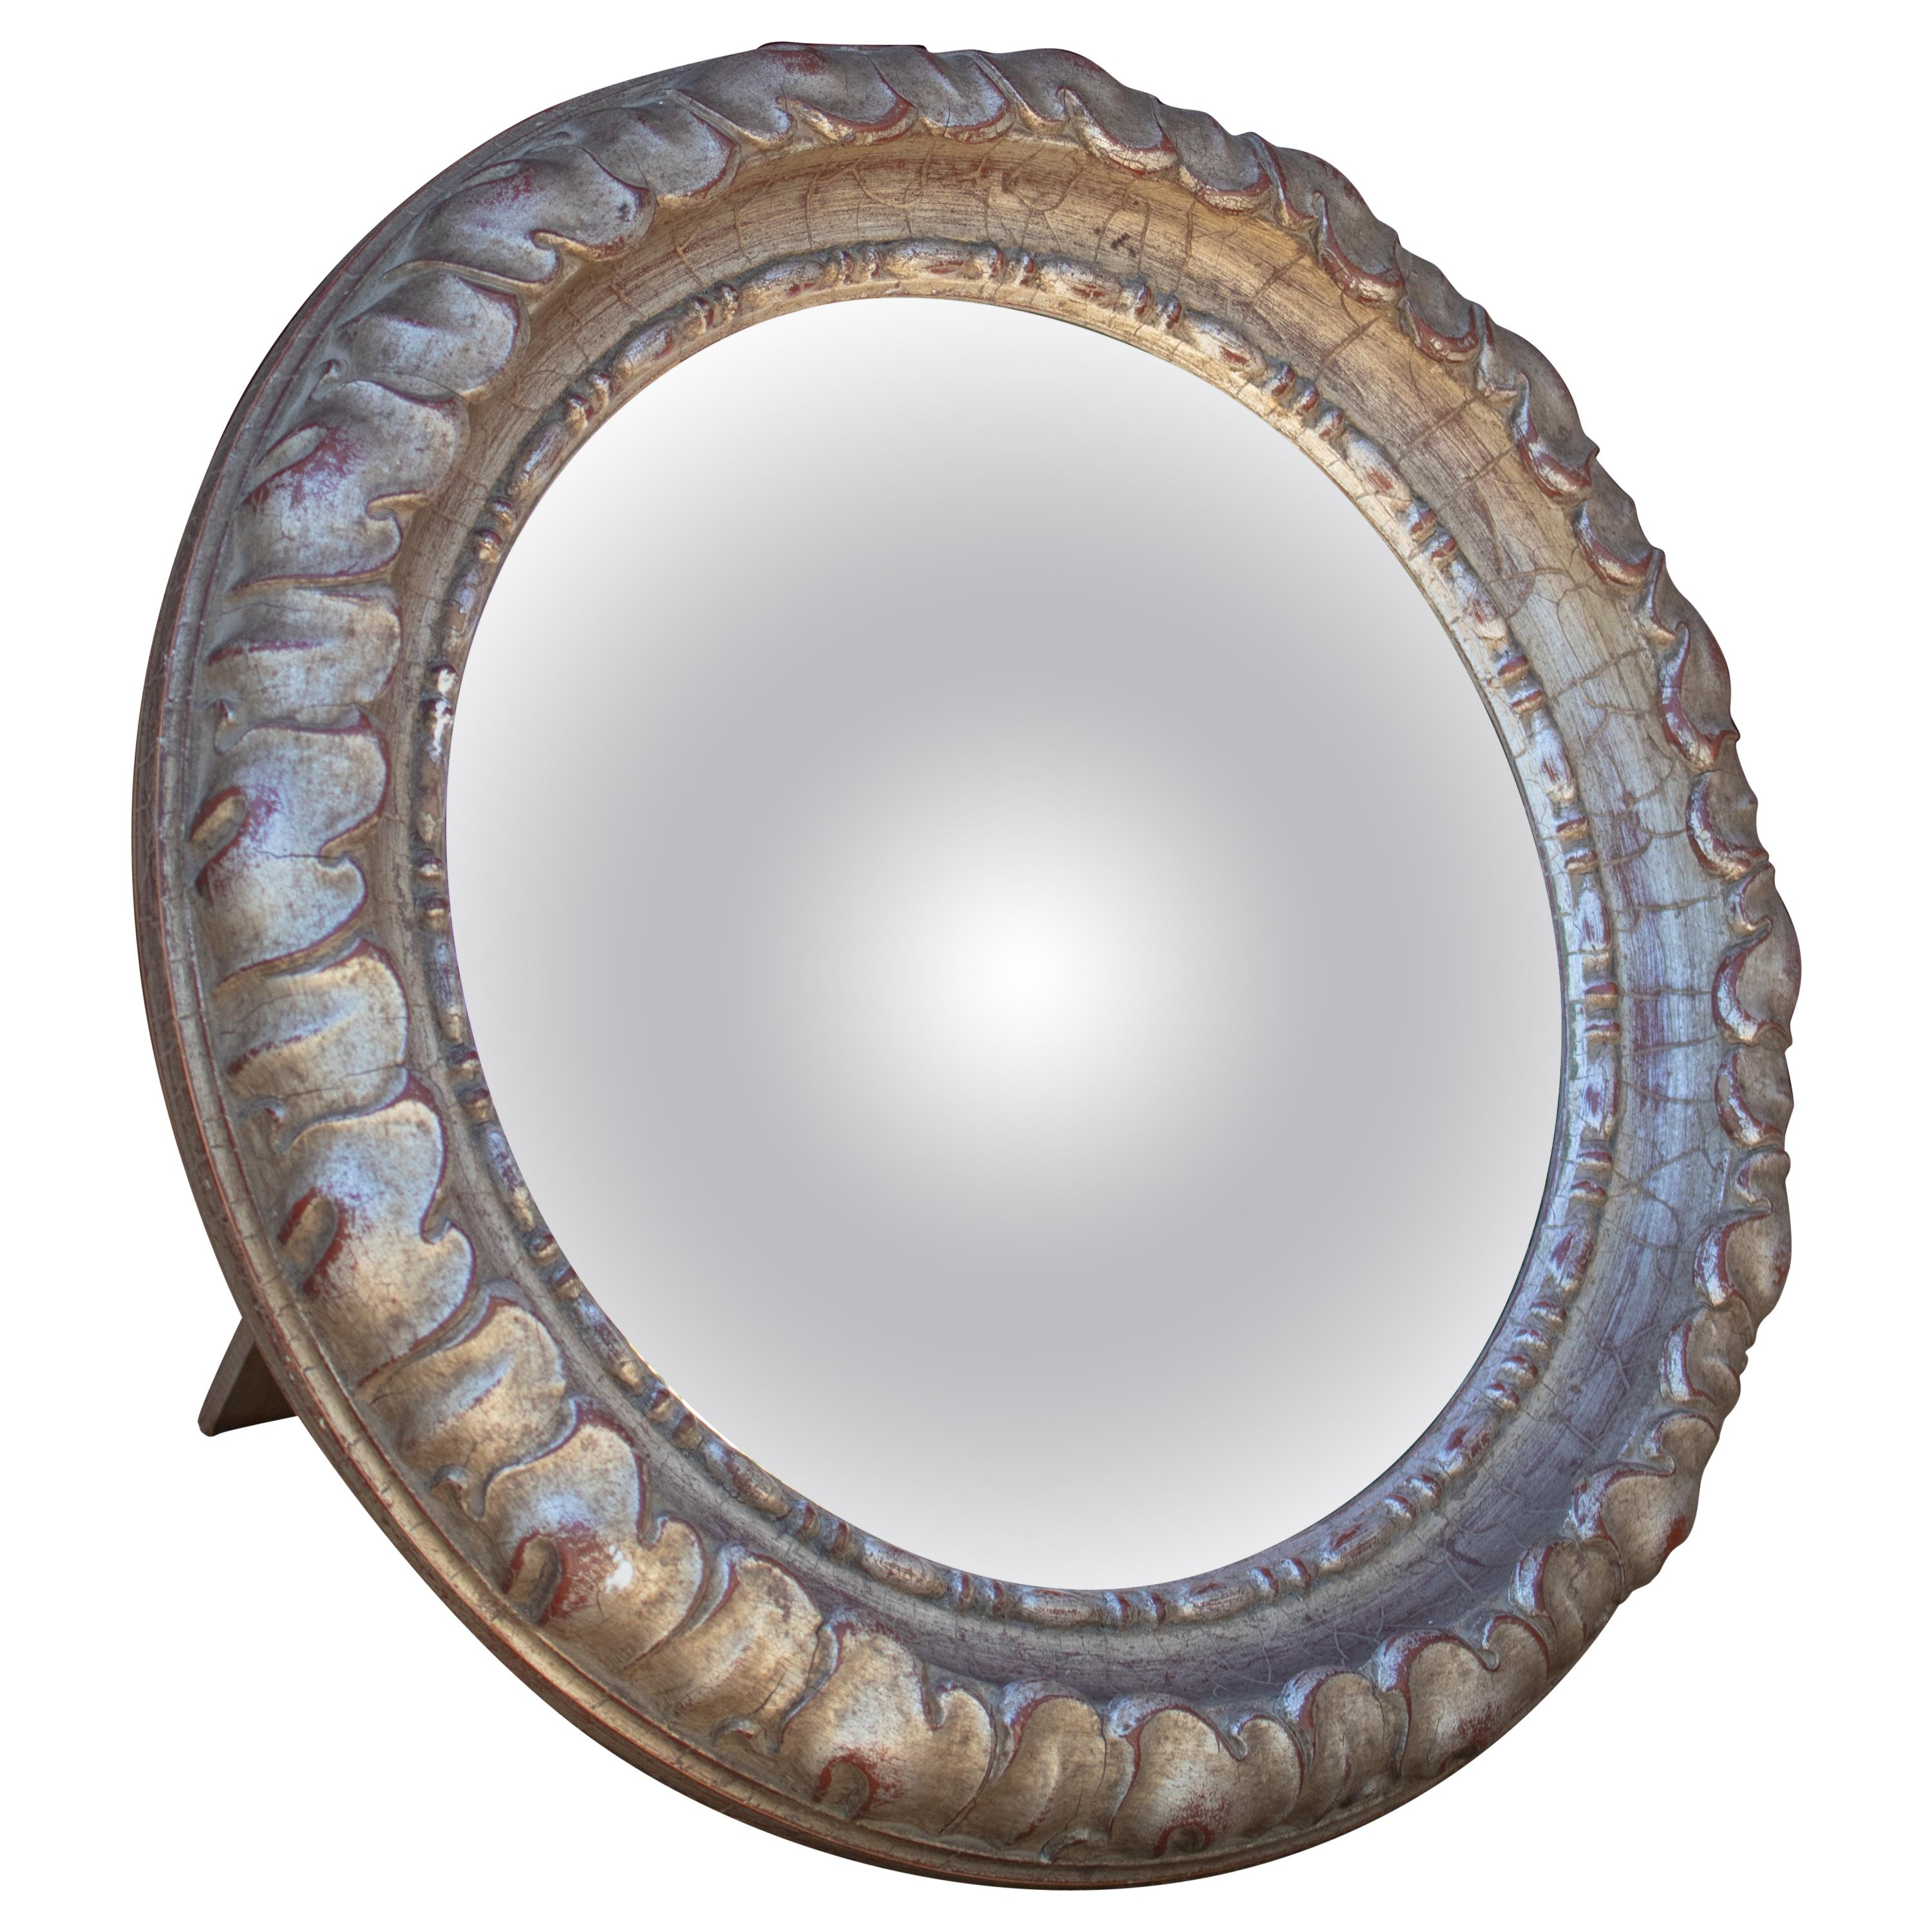 1970s Spanish Convex Table Mirror with Golden Frame